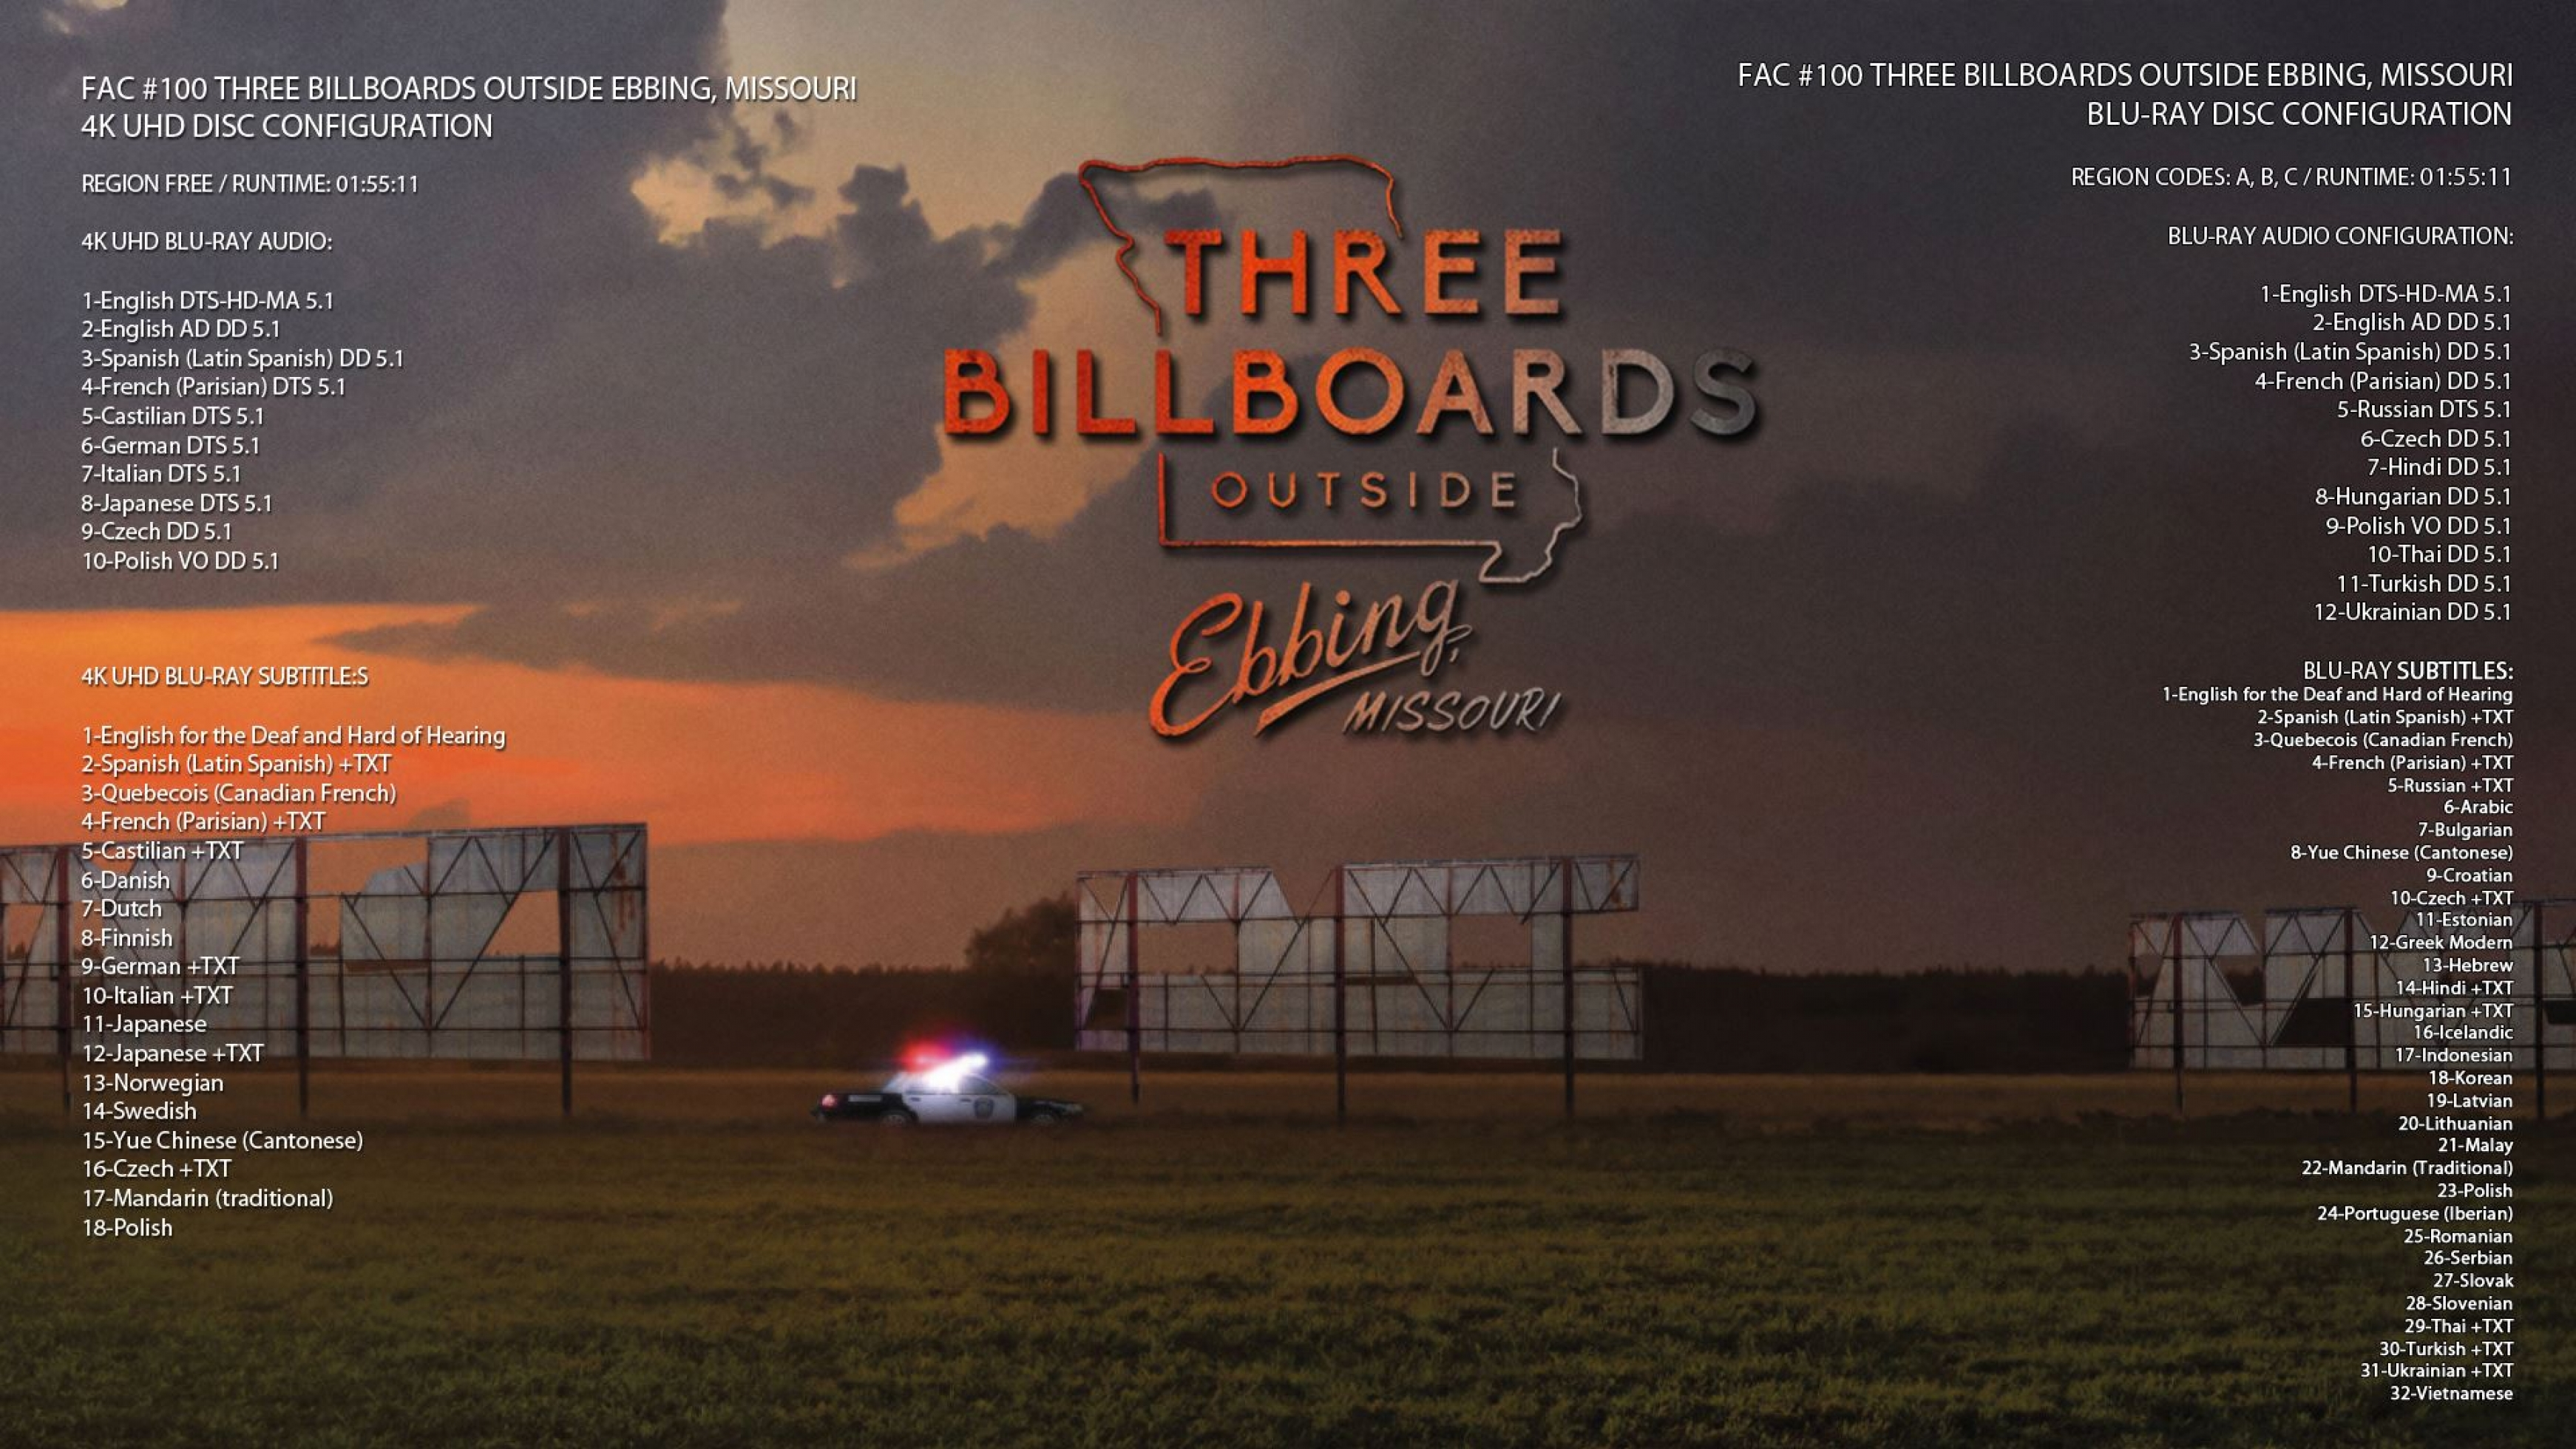 HD-FilmPortal 3 Billboards outside Ebbing, Missouri UHD FAC 100 Fullslip Language